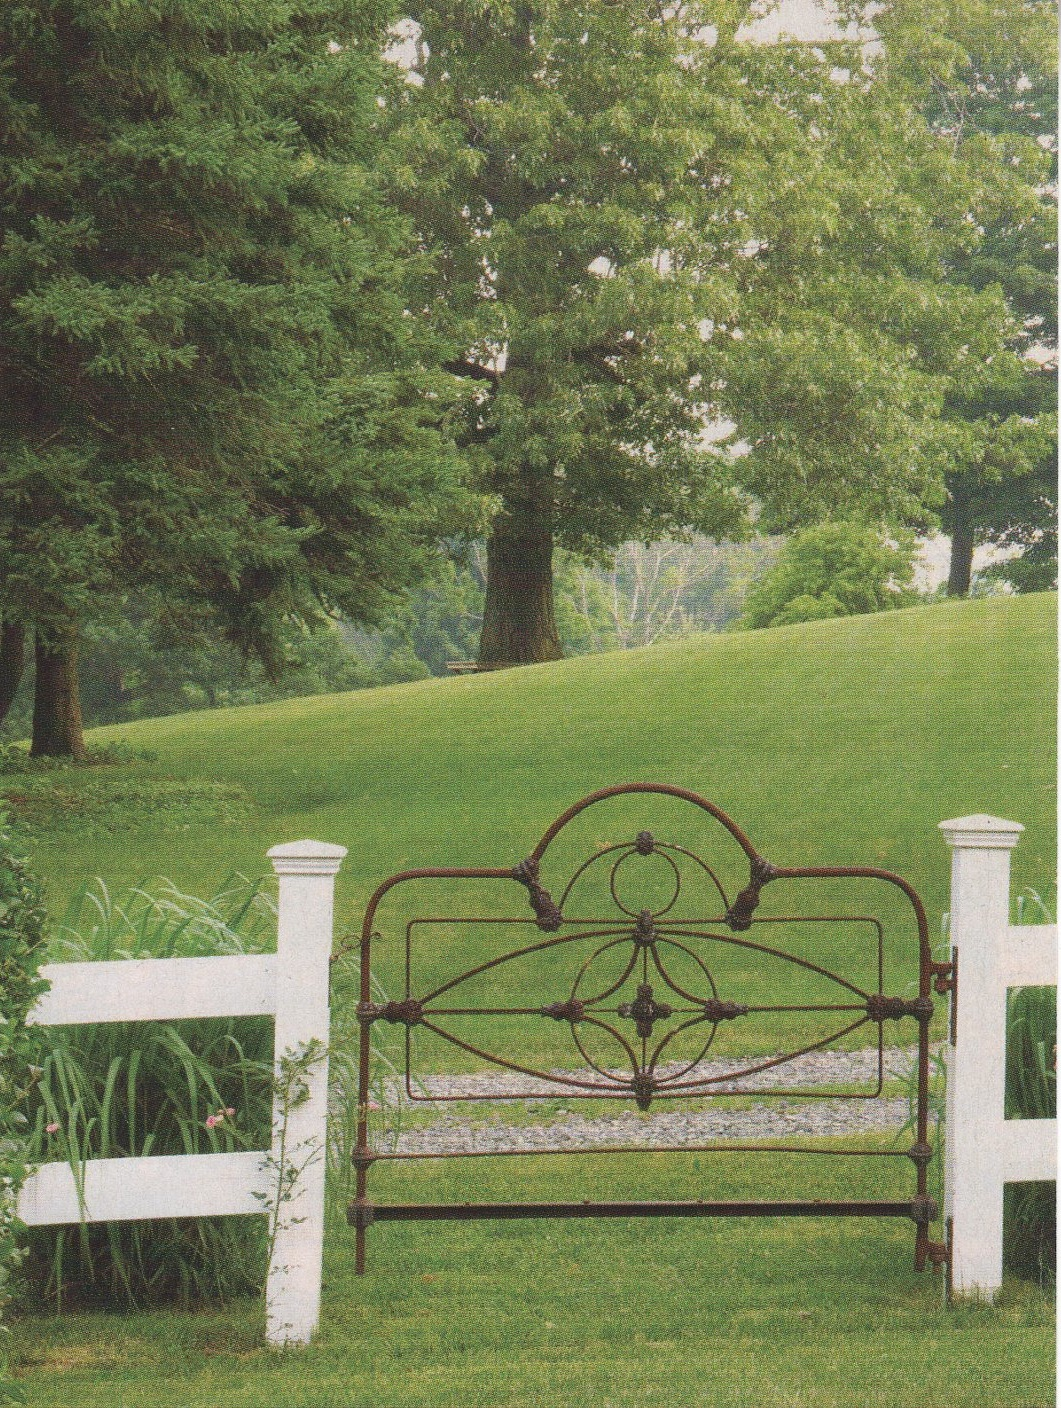 That old iron gate……… i mean bed « cathouse beds